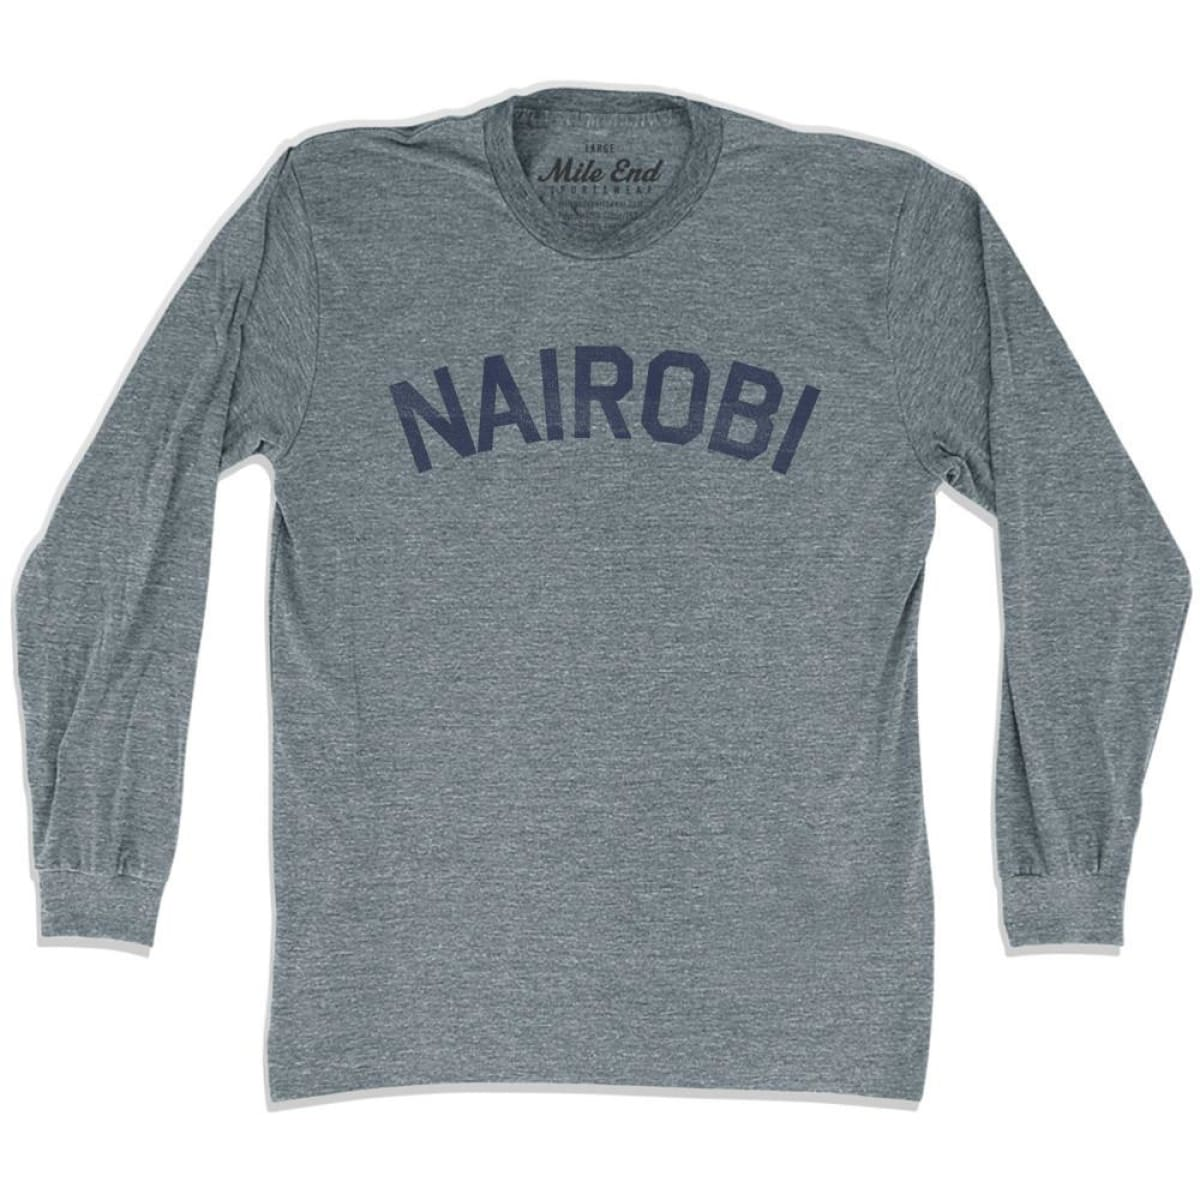 Nairobi City Vintage Long Sleeve T-shirt - Athletic Grey / Adult X-Small - Mile End City